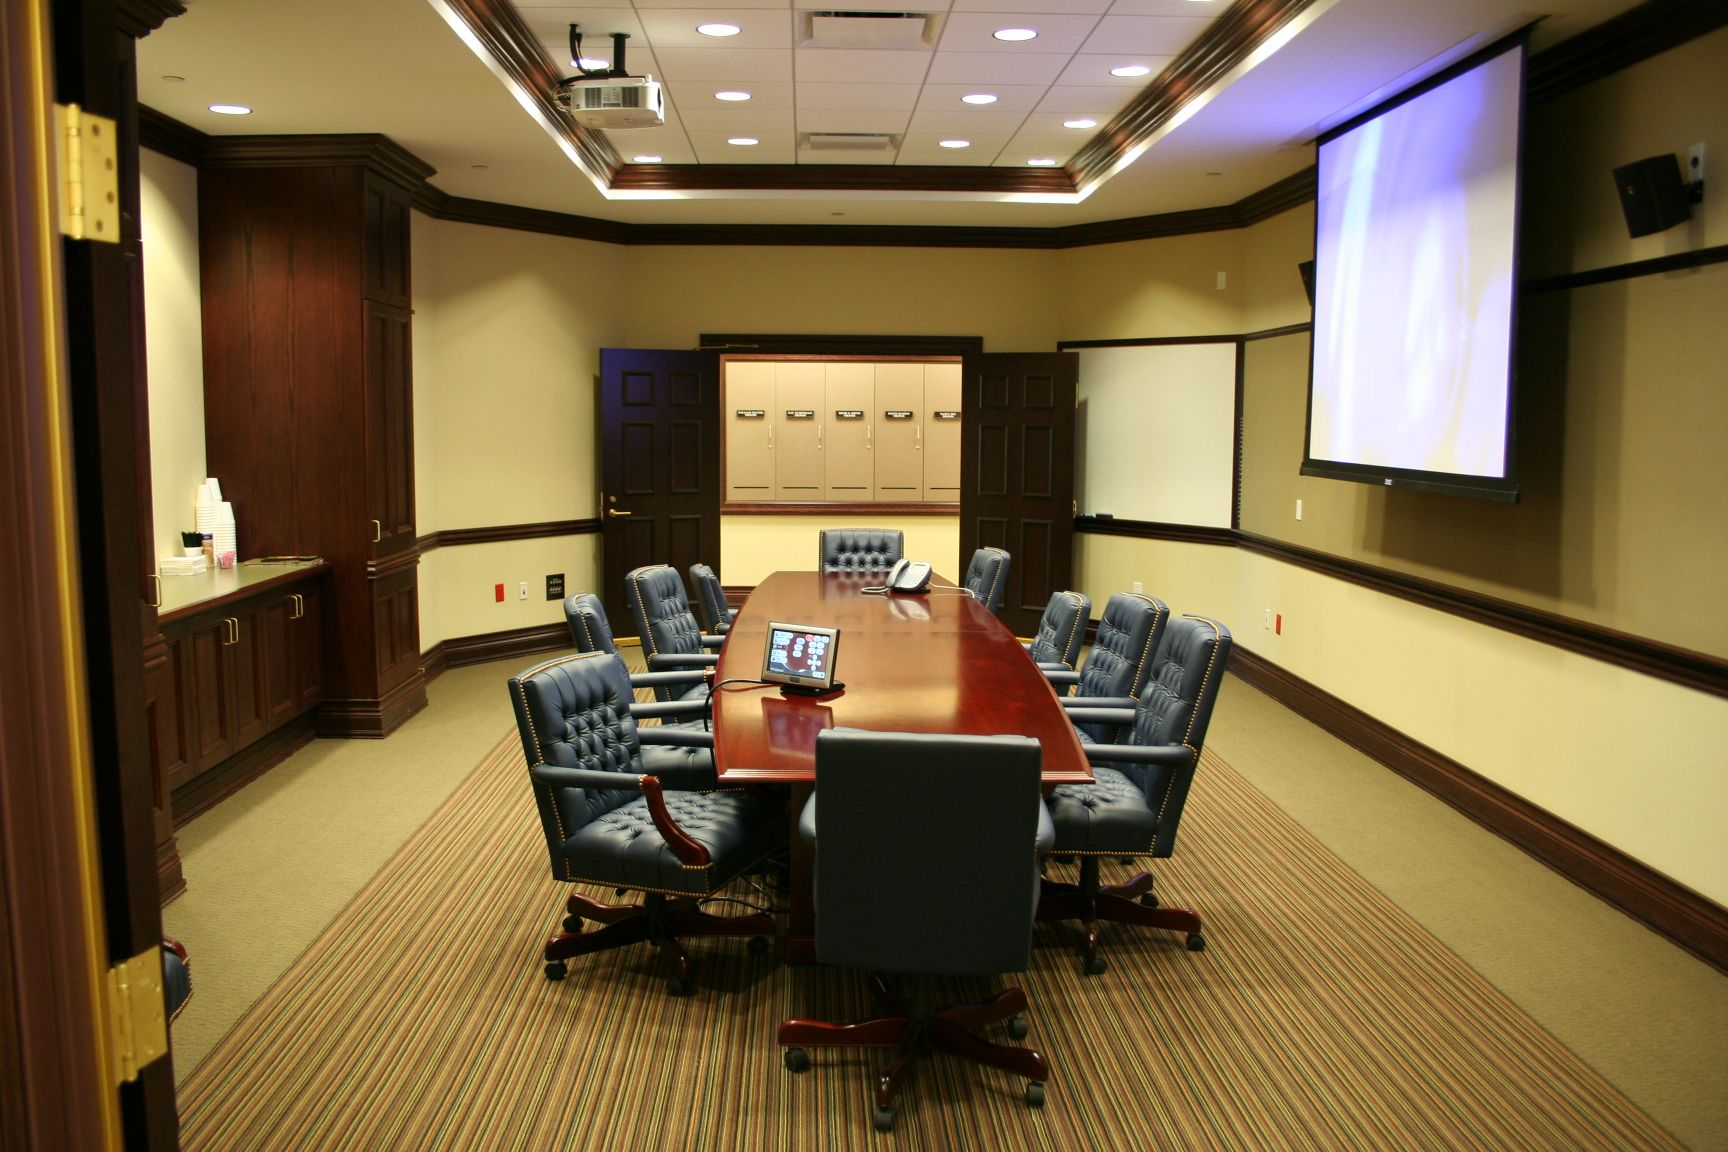 Conference Room Design Ideas modern conference room interior design It Is Important To Have Counter Space For Food In The Meeting Room